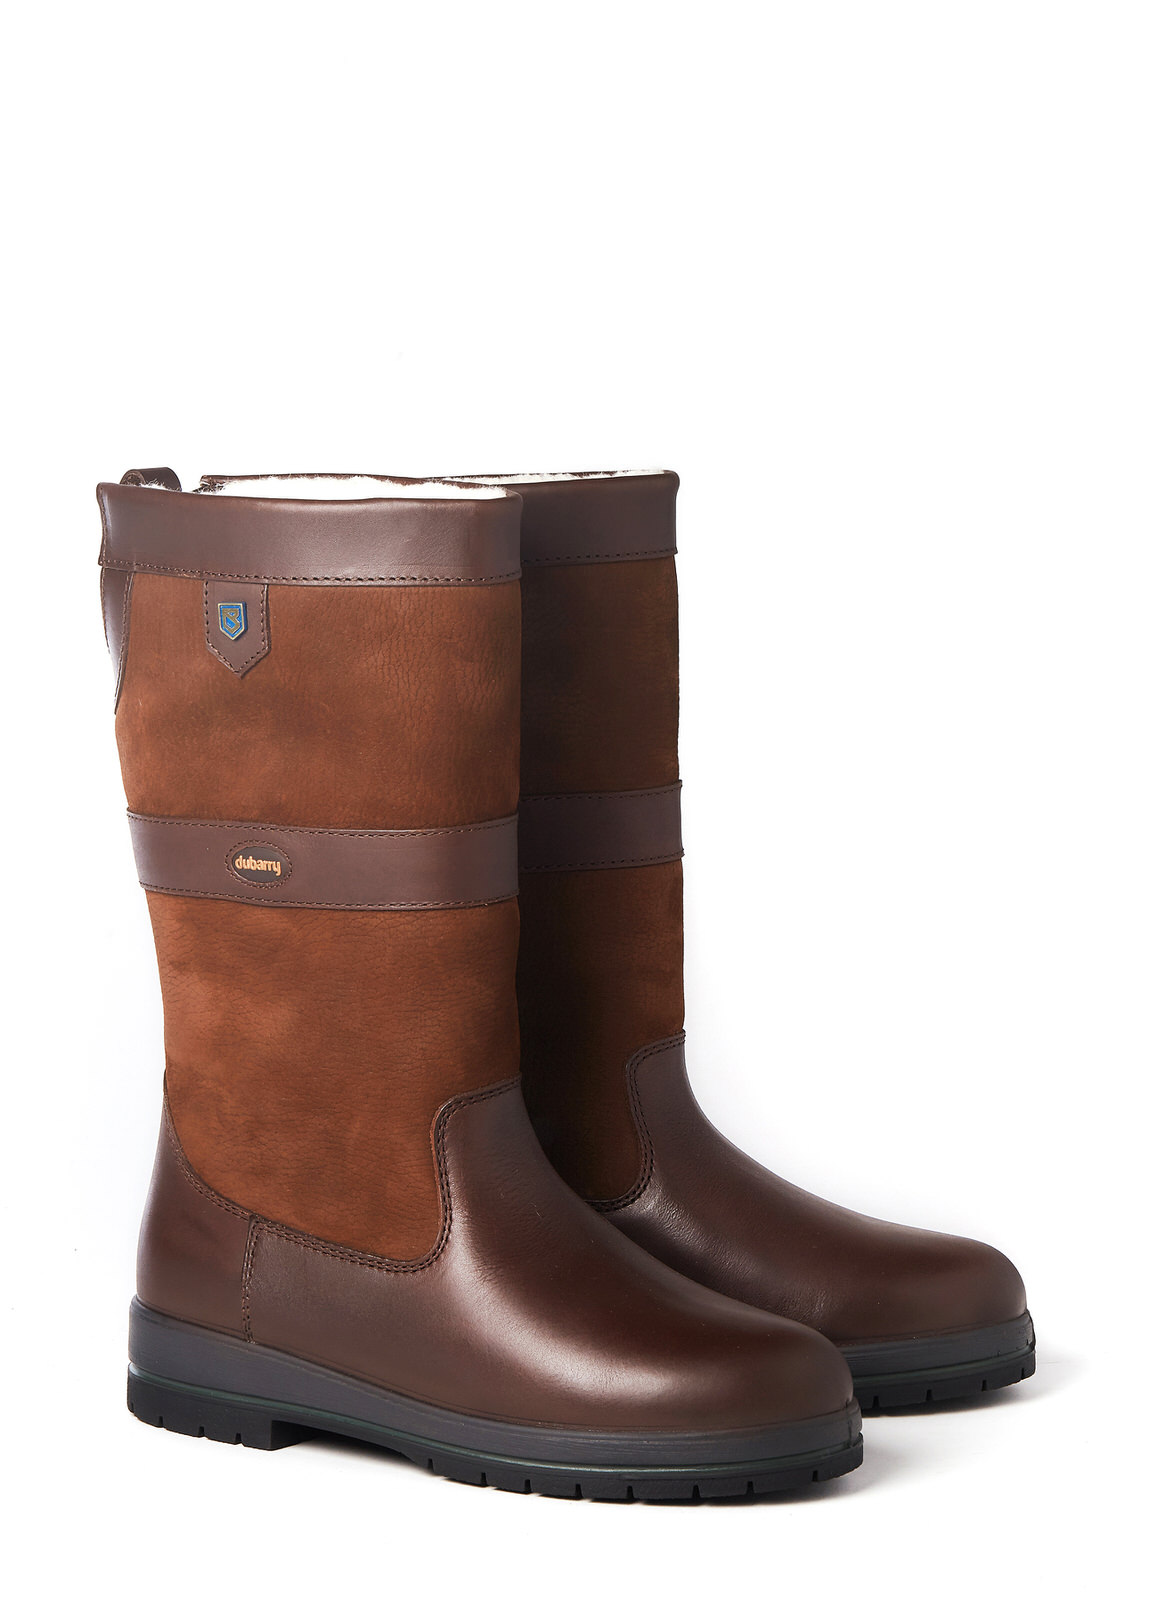 Donegal Country Boot - Walnut